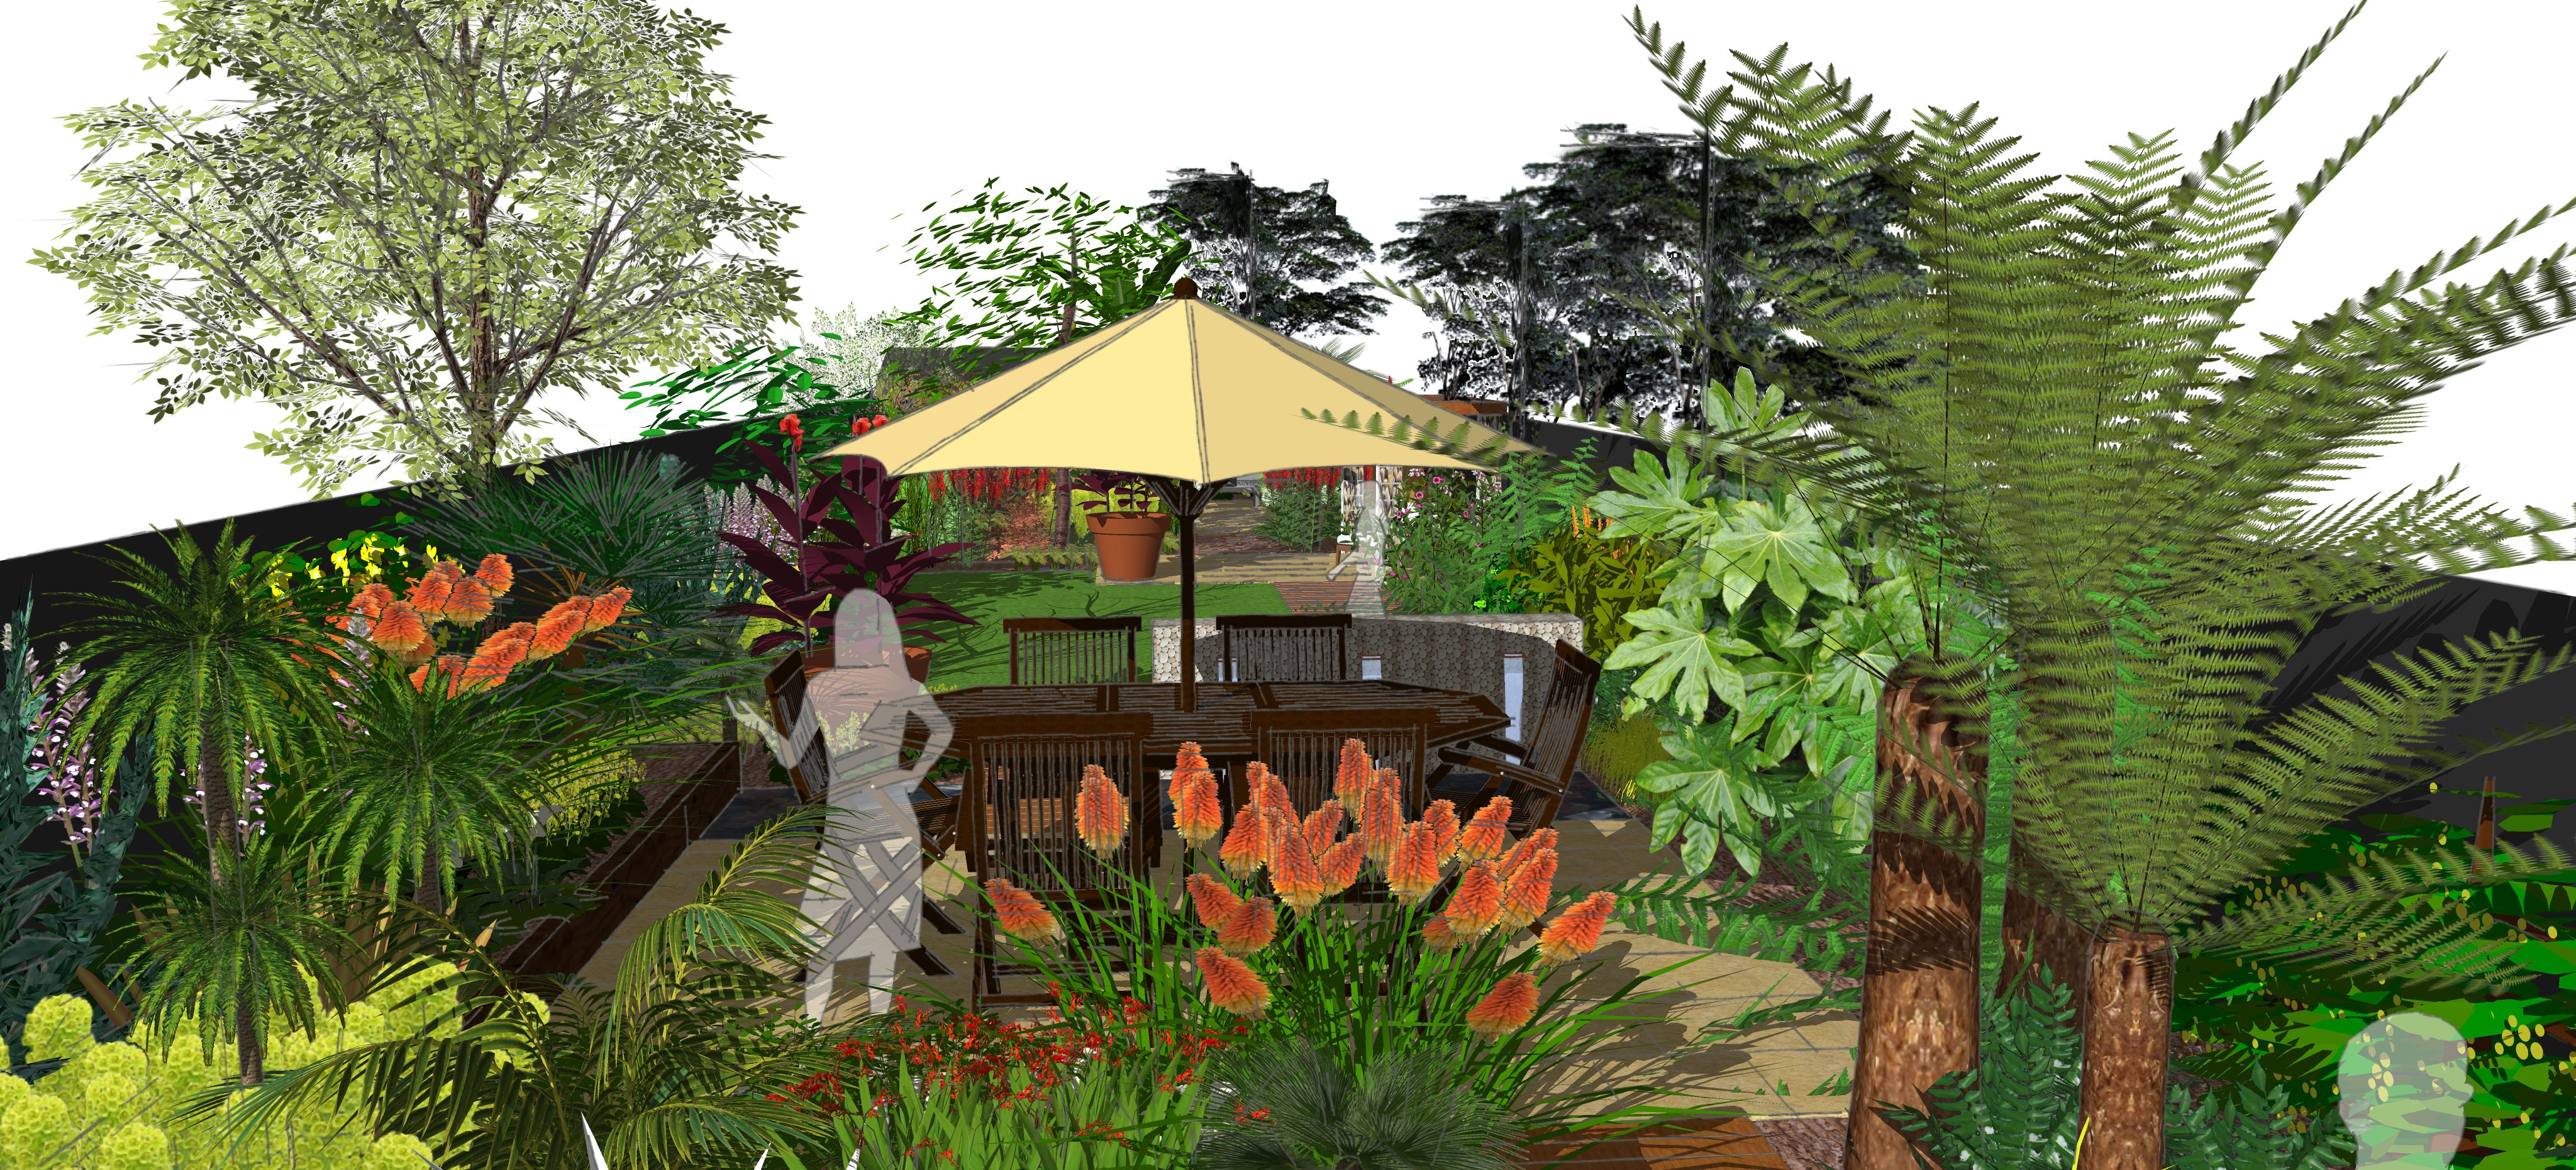 Garden layout - new summerhouse and patio - Earth Designs